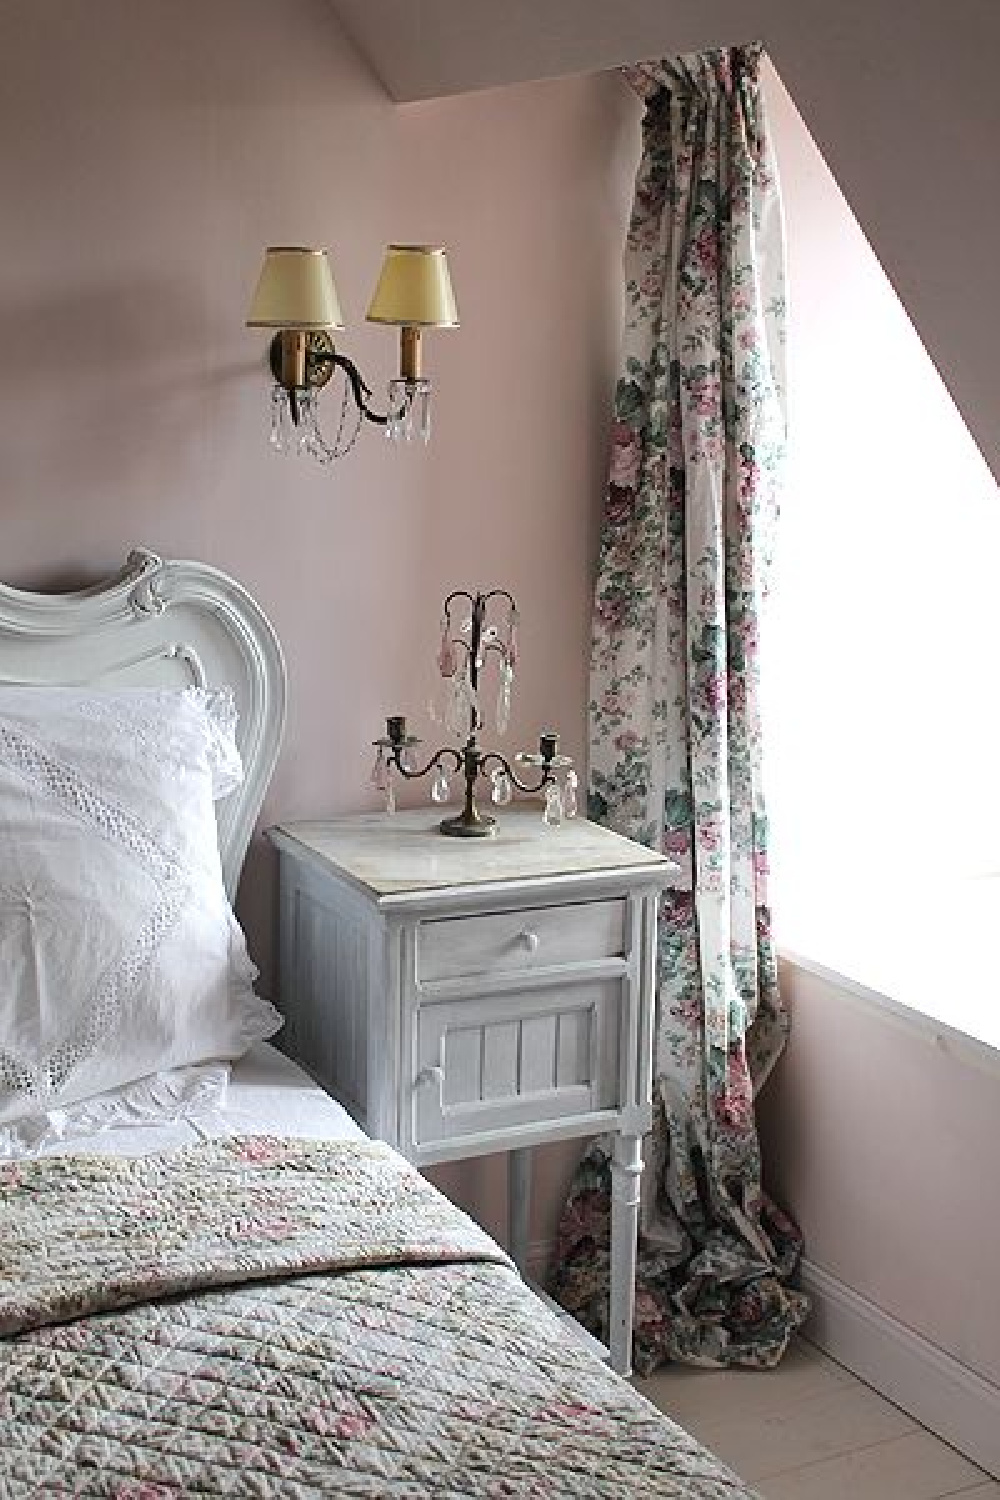 Bedroom with Farrow & Ball Calamine and French country interior design.